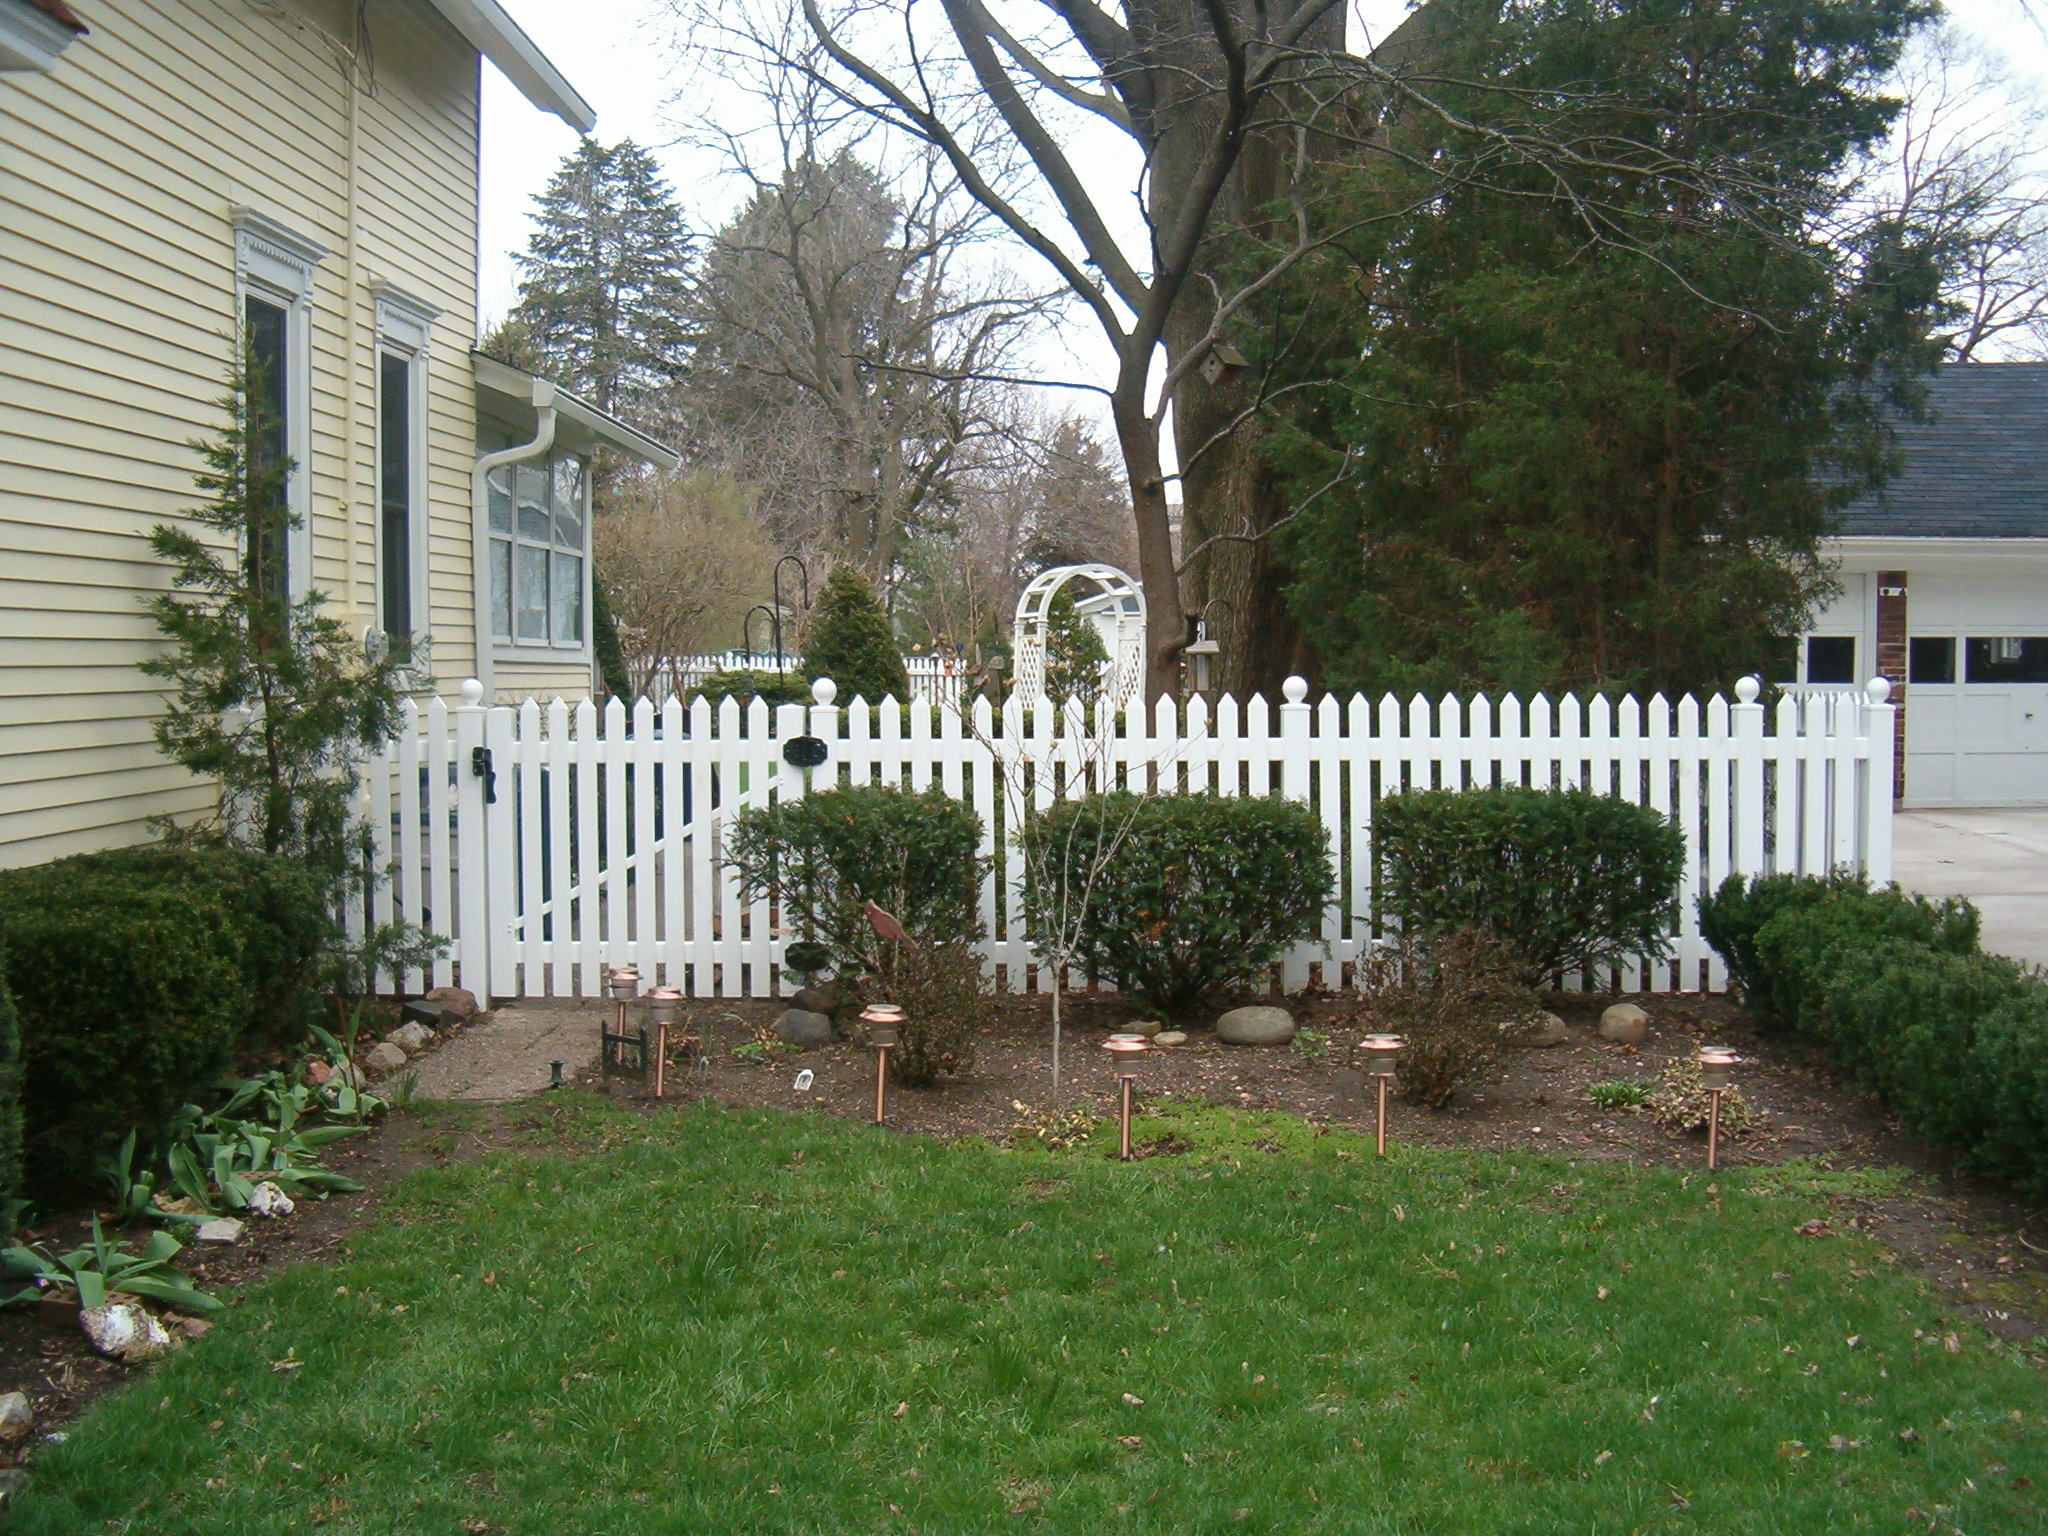 pvc fences are strong and durable pvc vinyl is used in the building industry for a variety of purposes that include windows siding decks